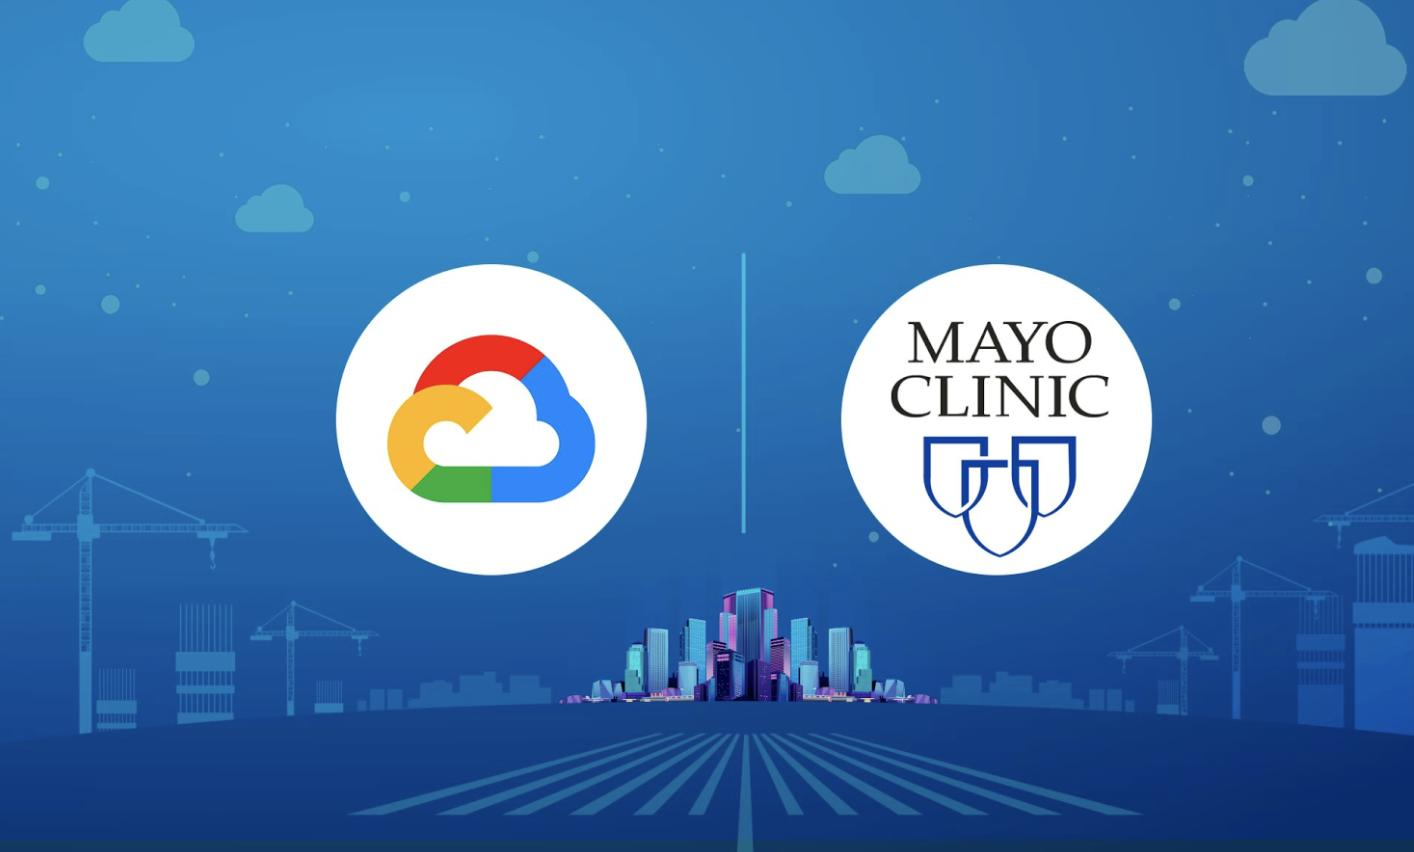 Google moves in near the Mayo Clinic to ease collaboration | Engadget - Engadget